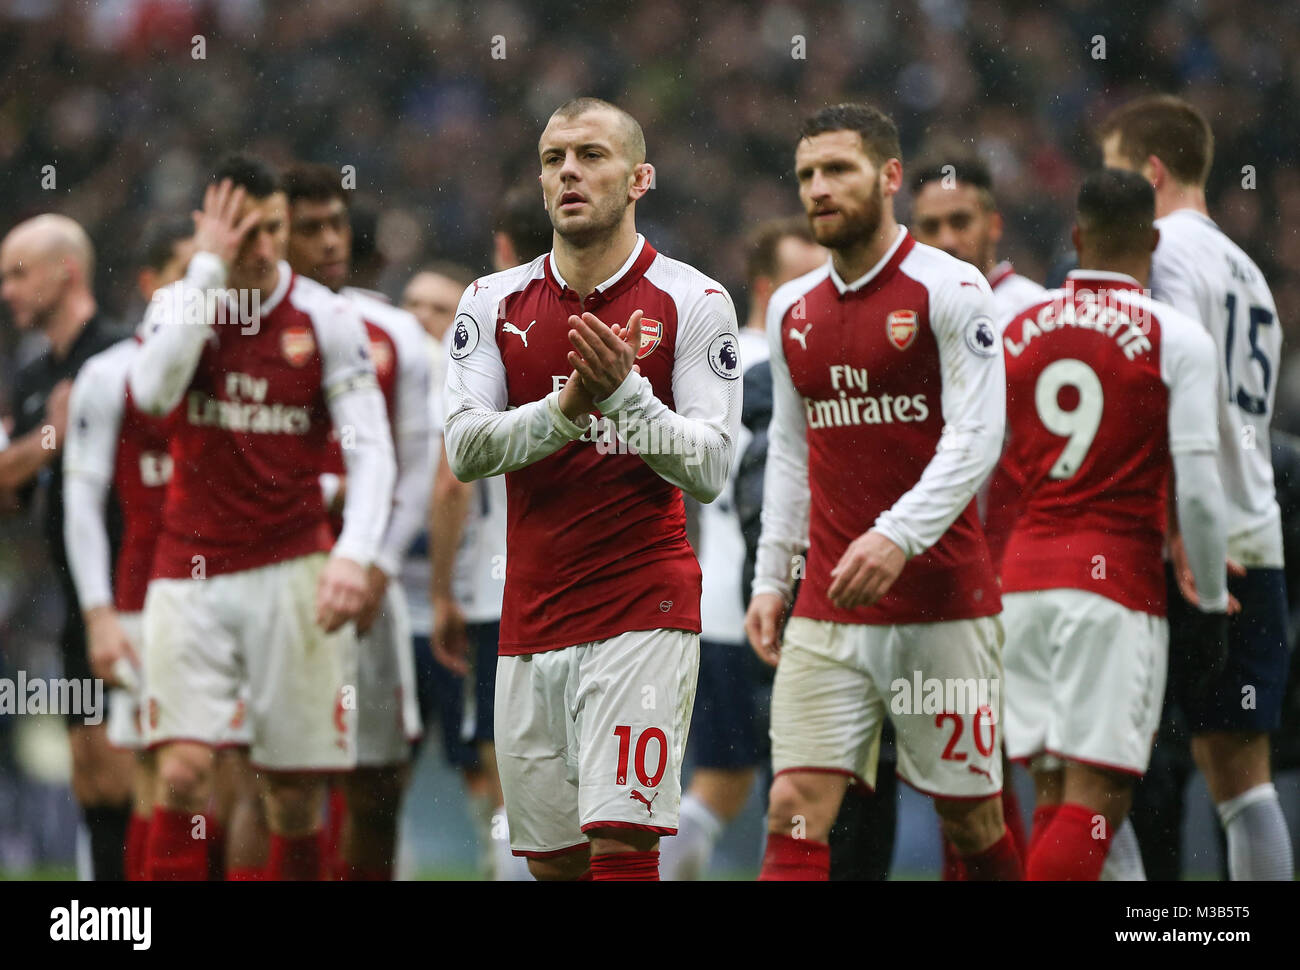 A dejected Jack Wilshere of Arsenal at the final whistle during the Premier League match between Tottenham Hotspur - Stock Image